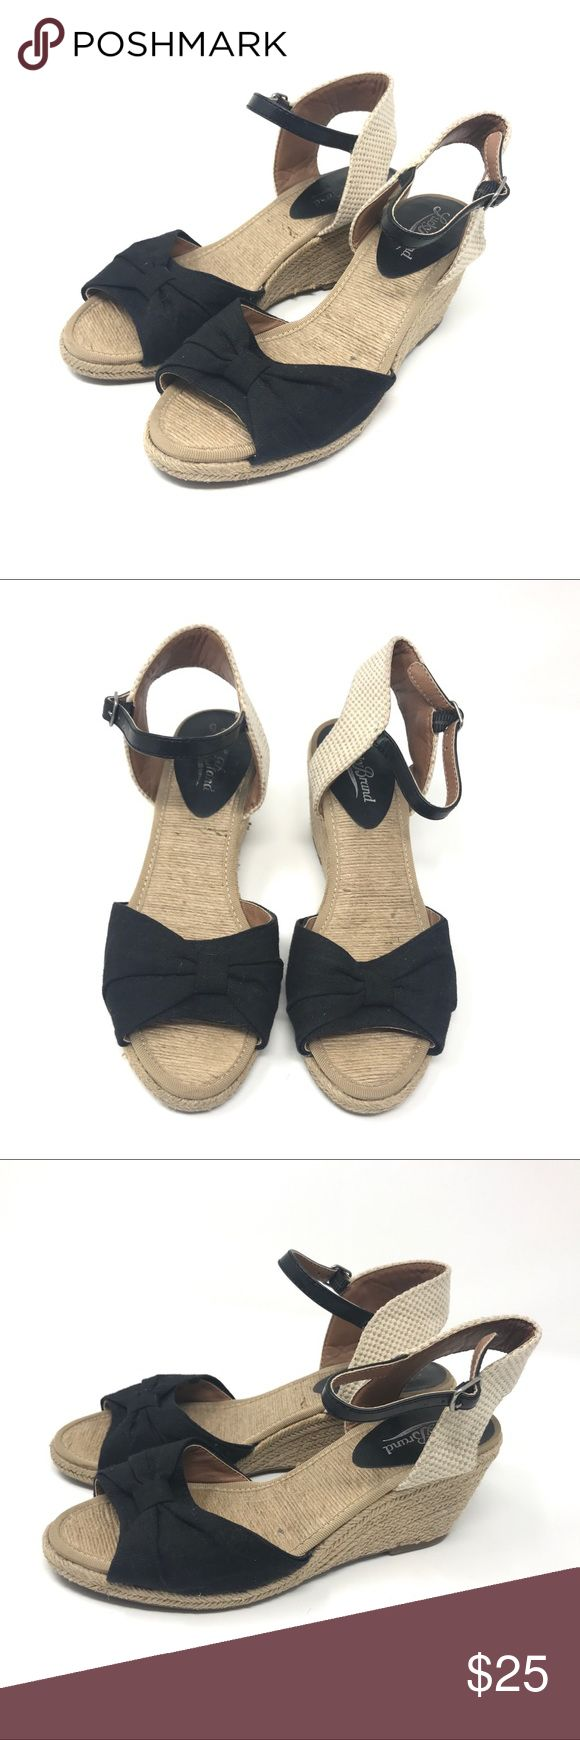 Lucky Brand Black Espadrille Wedge Sandals Black espadrilles with a wedge heel and ankle strap. Contrasting heel strap.  Open toe with bow ties / wrap on front bands.   100% authentic Lucky Brand Women's Shoes    Color:  Black & Tan throughout    Size:  Women's 6     Condition:  Excellent; barely any visible wear. Logo is partially rubbed off from removing sticker, otherwise no flaws.  No major flaws or imperfections. No stains, holes or heavy wear. Please see all photos as a visual…